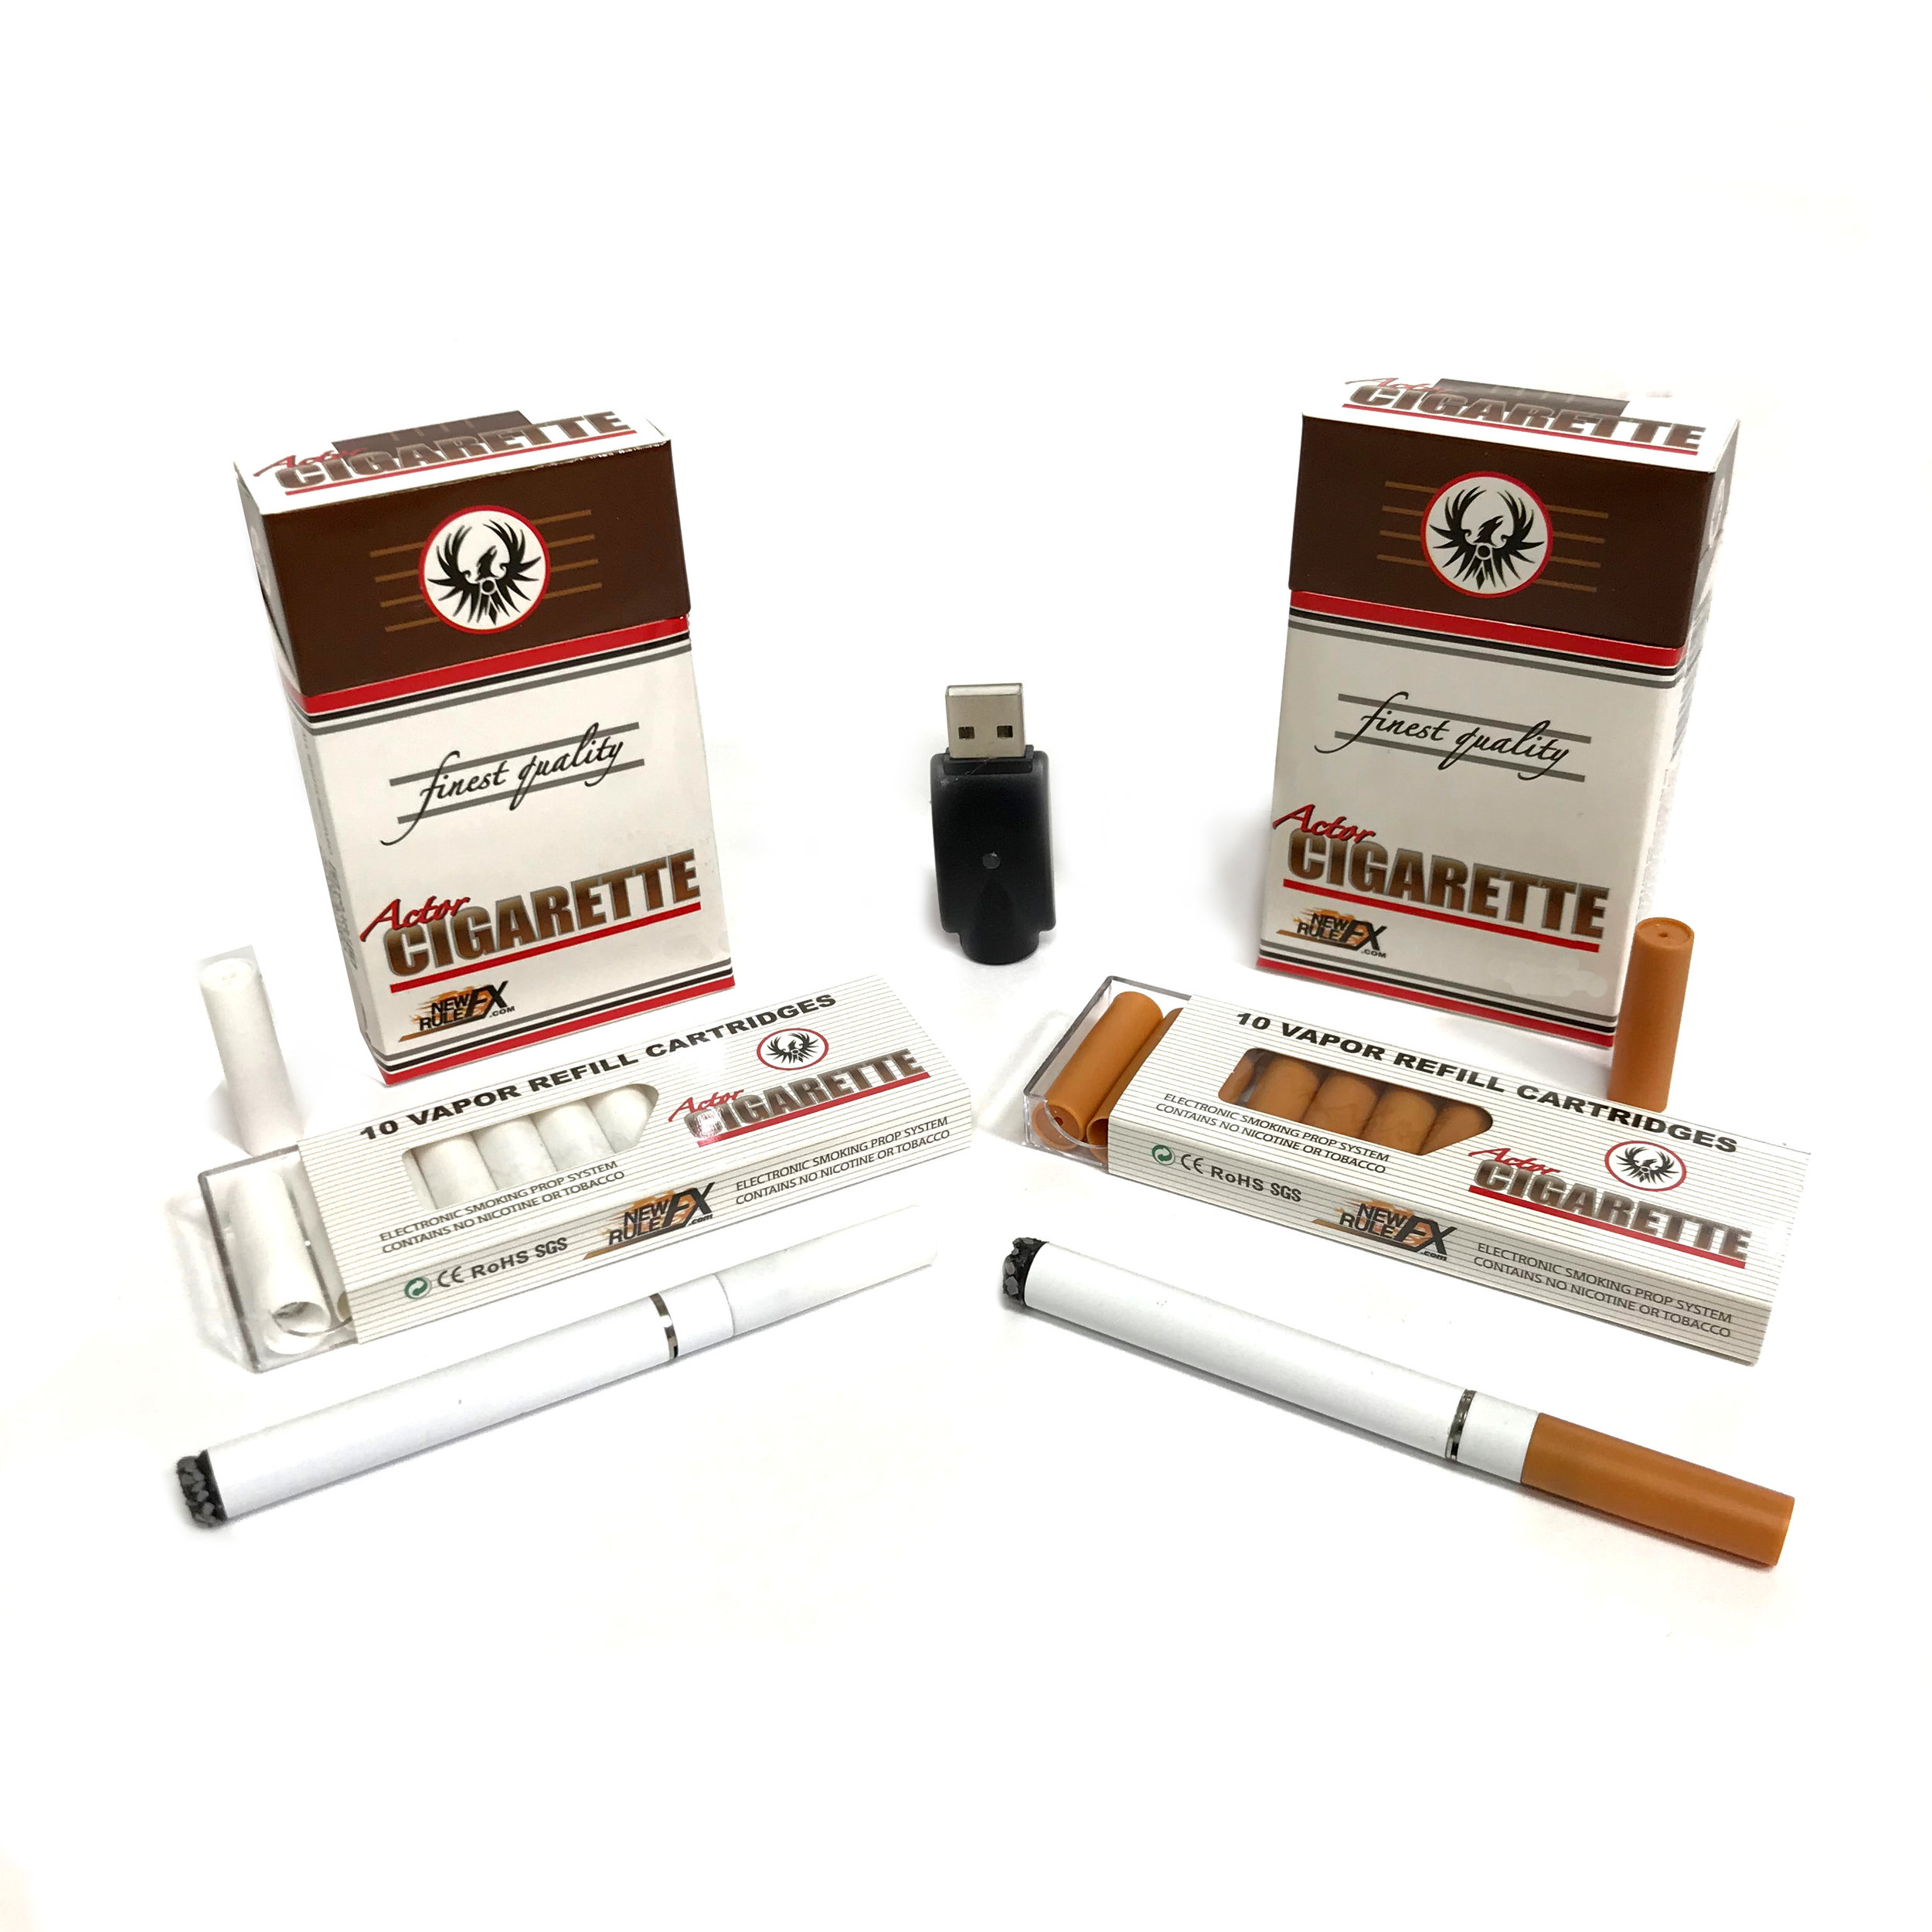 USB Actor Cigarette Master Image.jpg